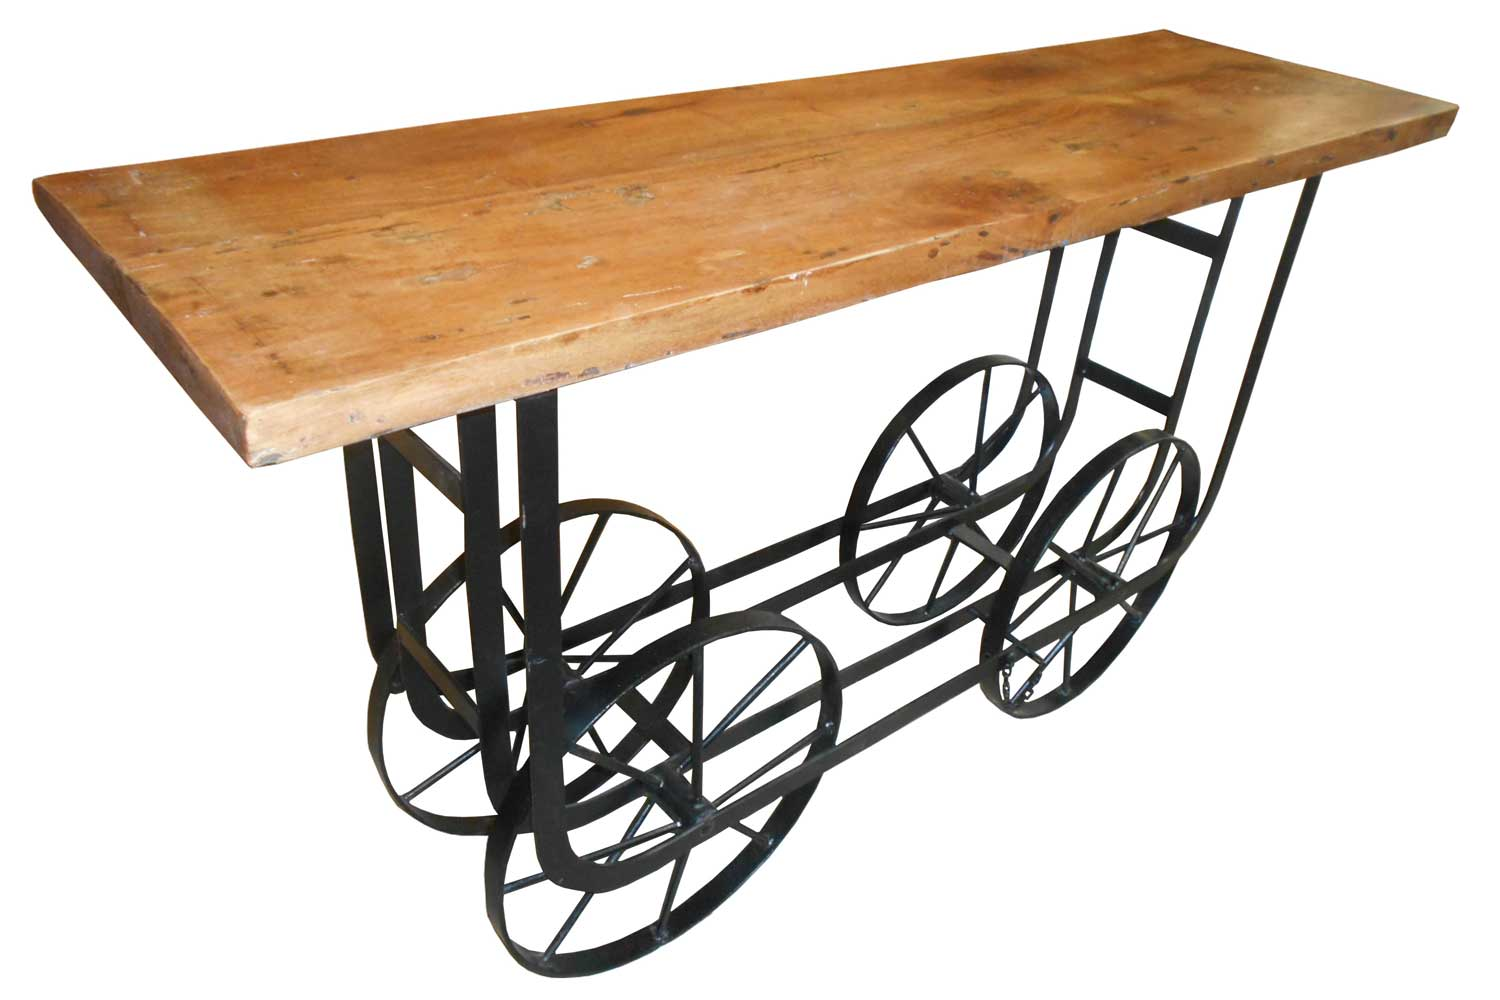 Homelegance bremerton sofa table with functional wheels for Sofa table on wheels